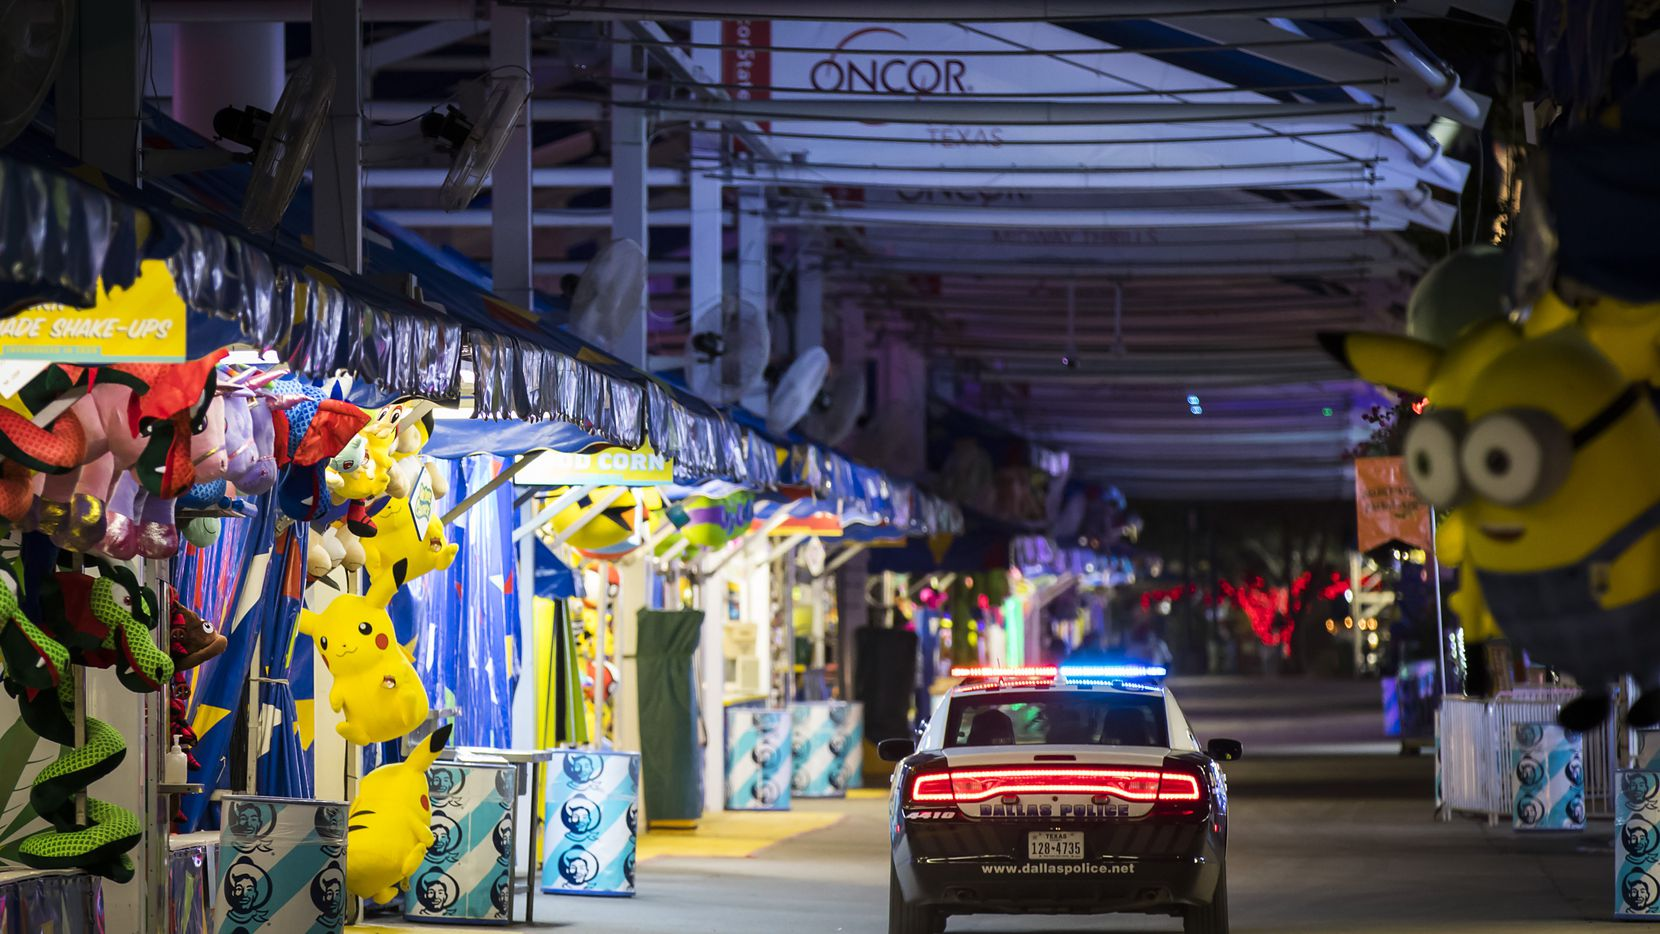 A Dallas police cruiser patrols the empty midway after closing at the State Fair of Texas.